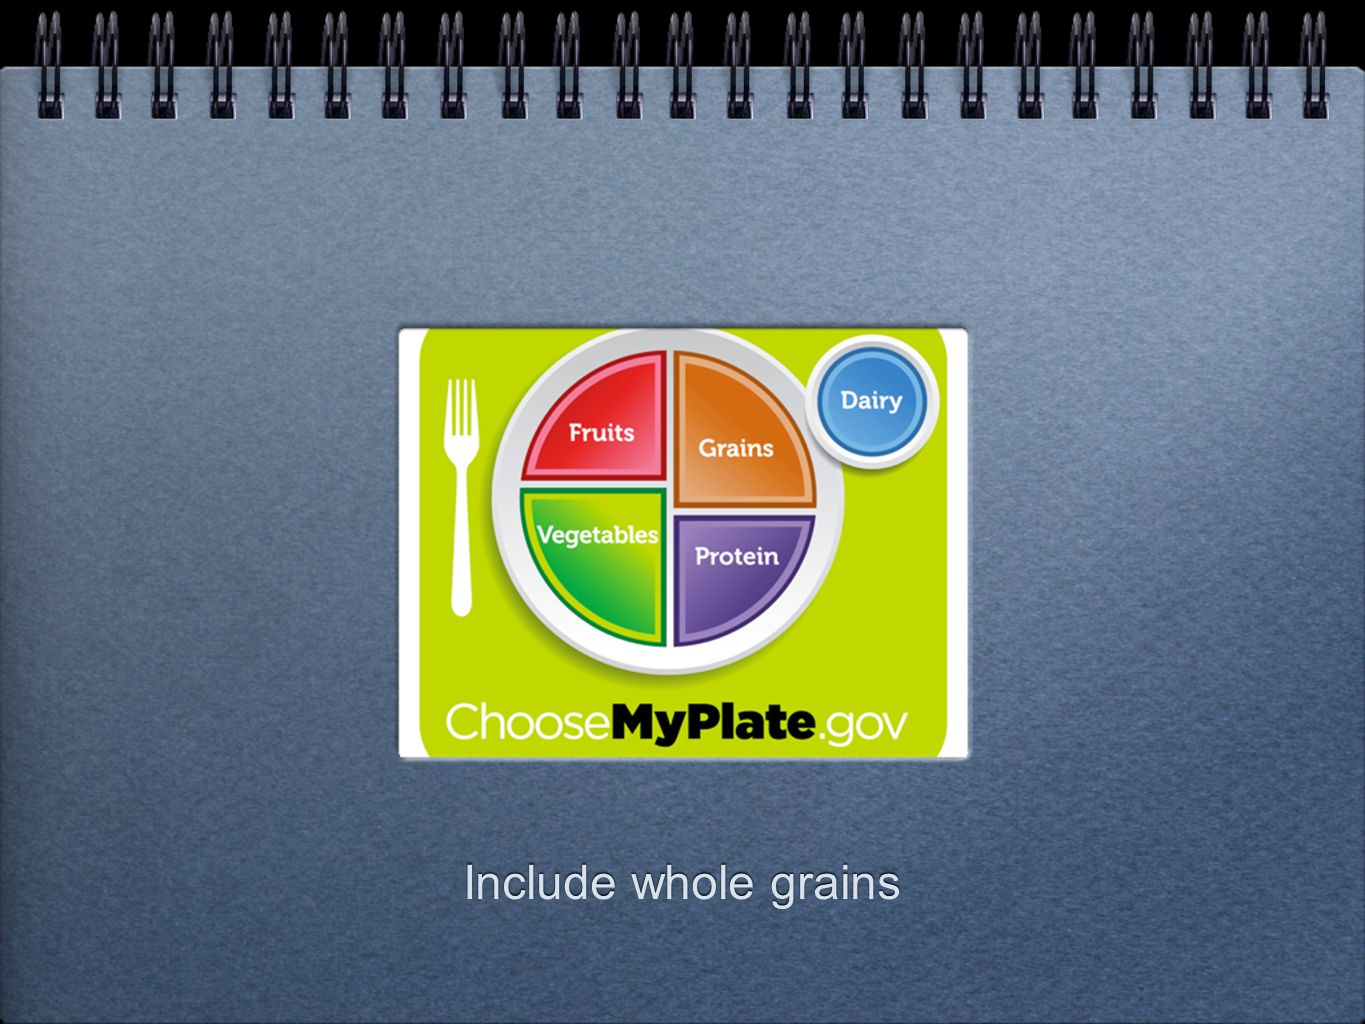 Include whole grains